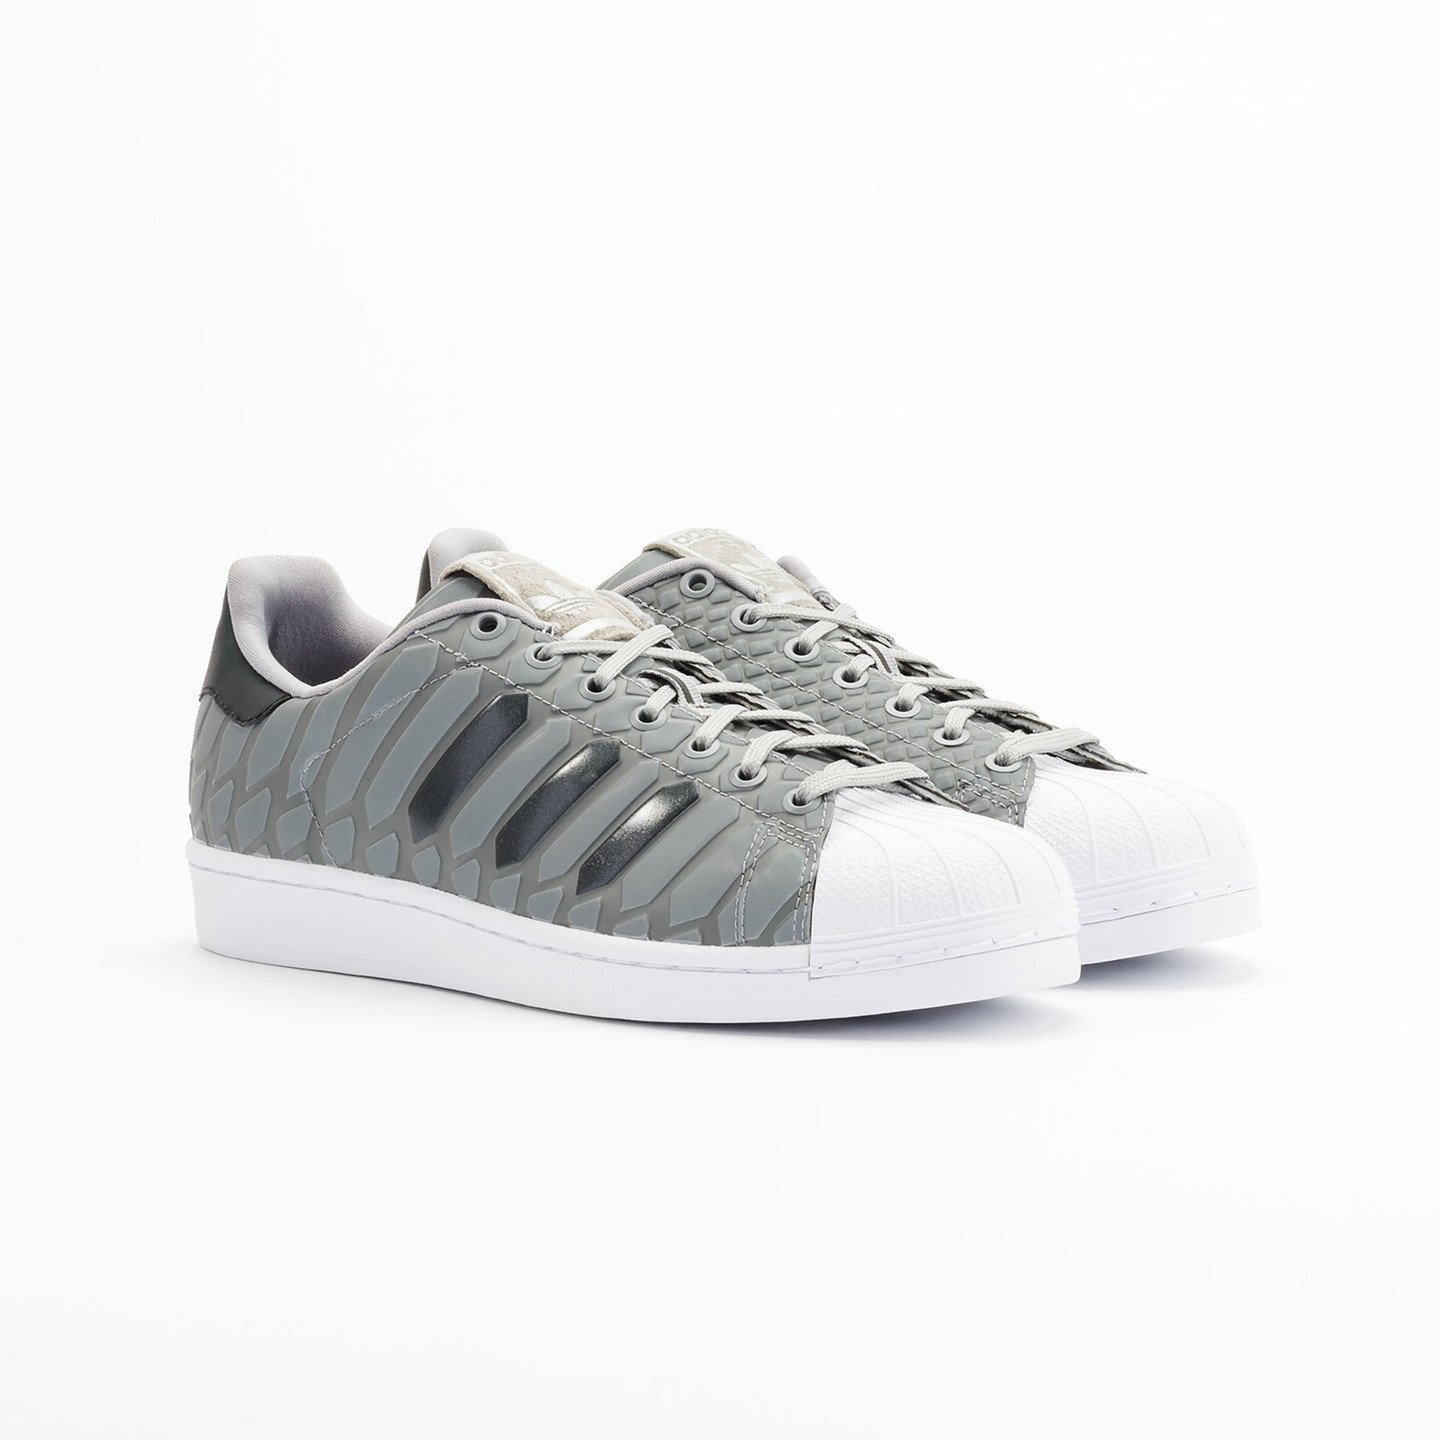 Adidas Superstar Xeno Pack Ltonix / Supcol / Ftwwht D69367-42.66